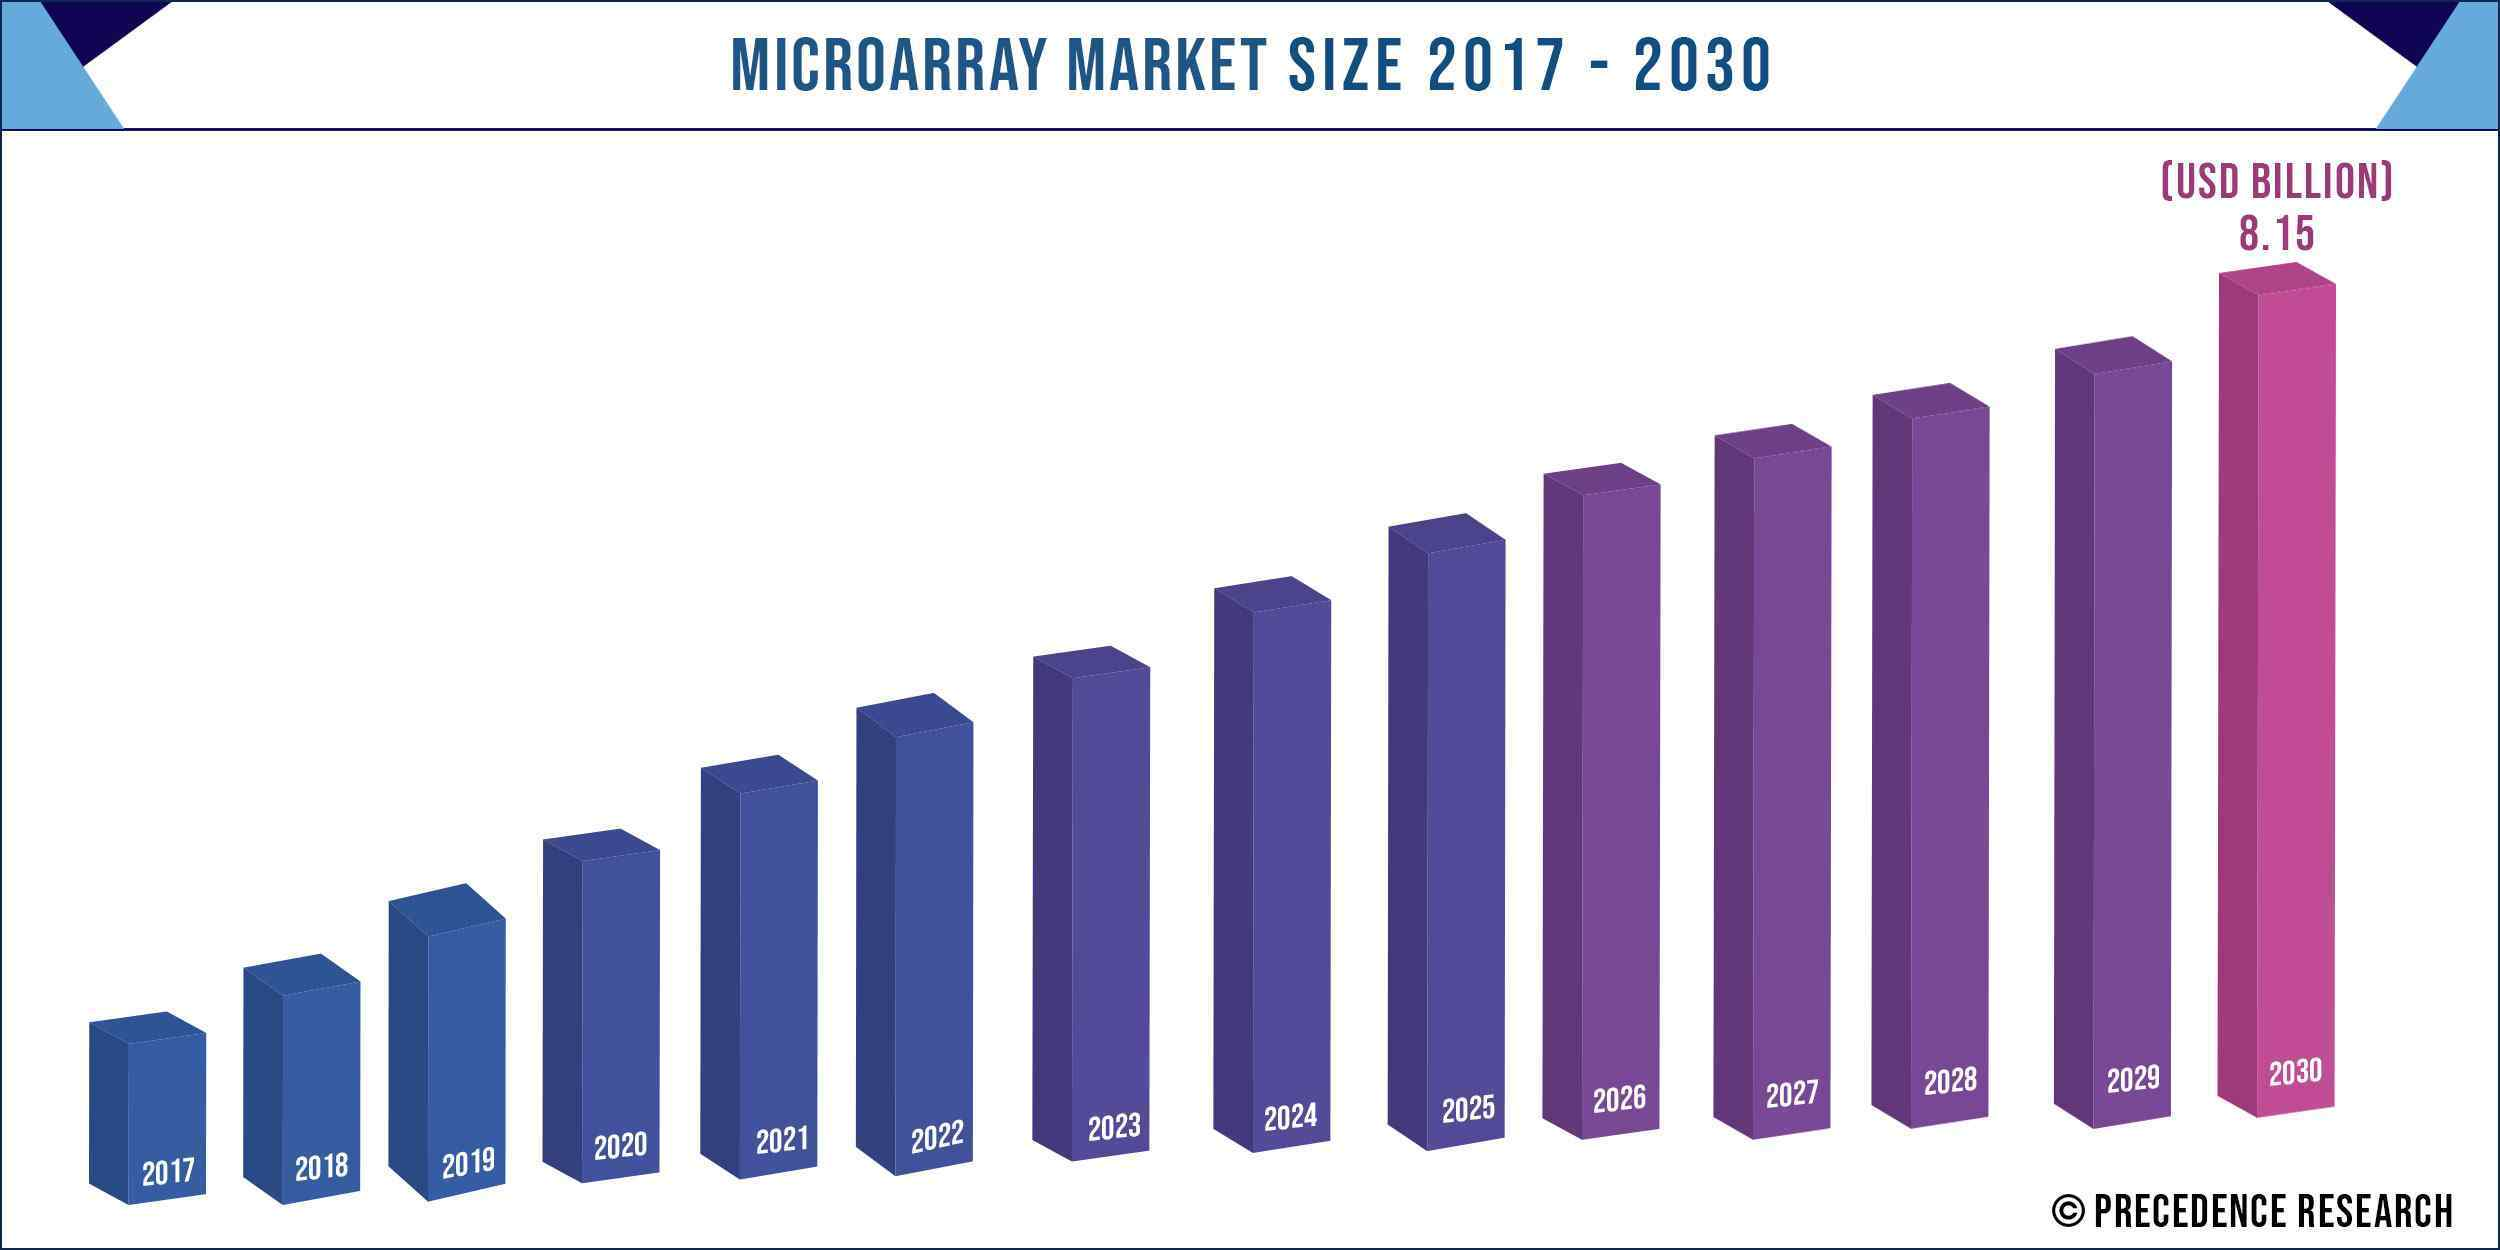 Microarray Market Size 2017 to 2030